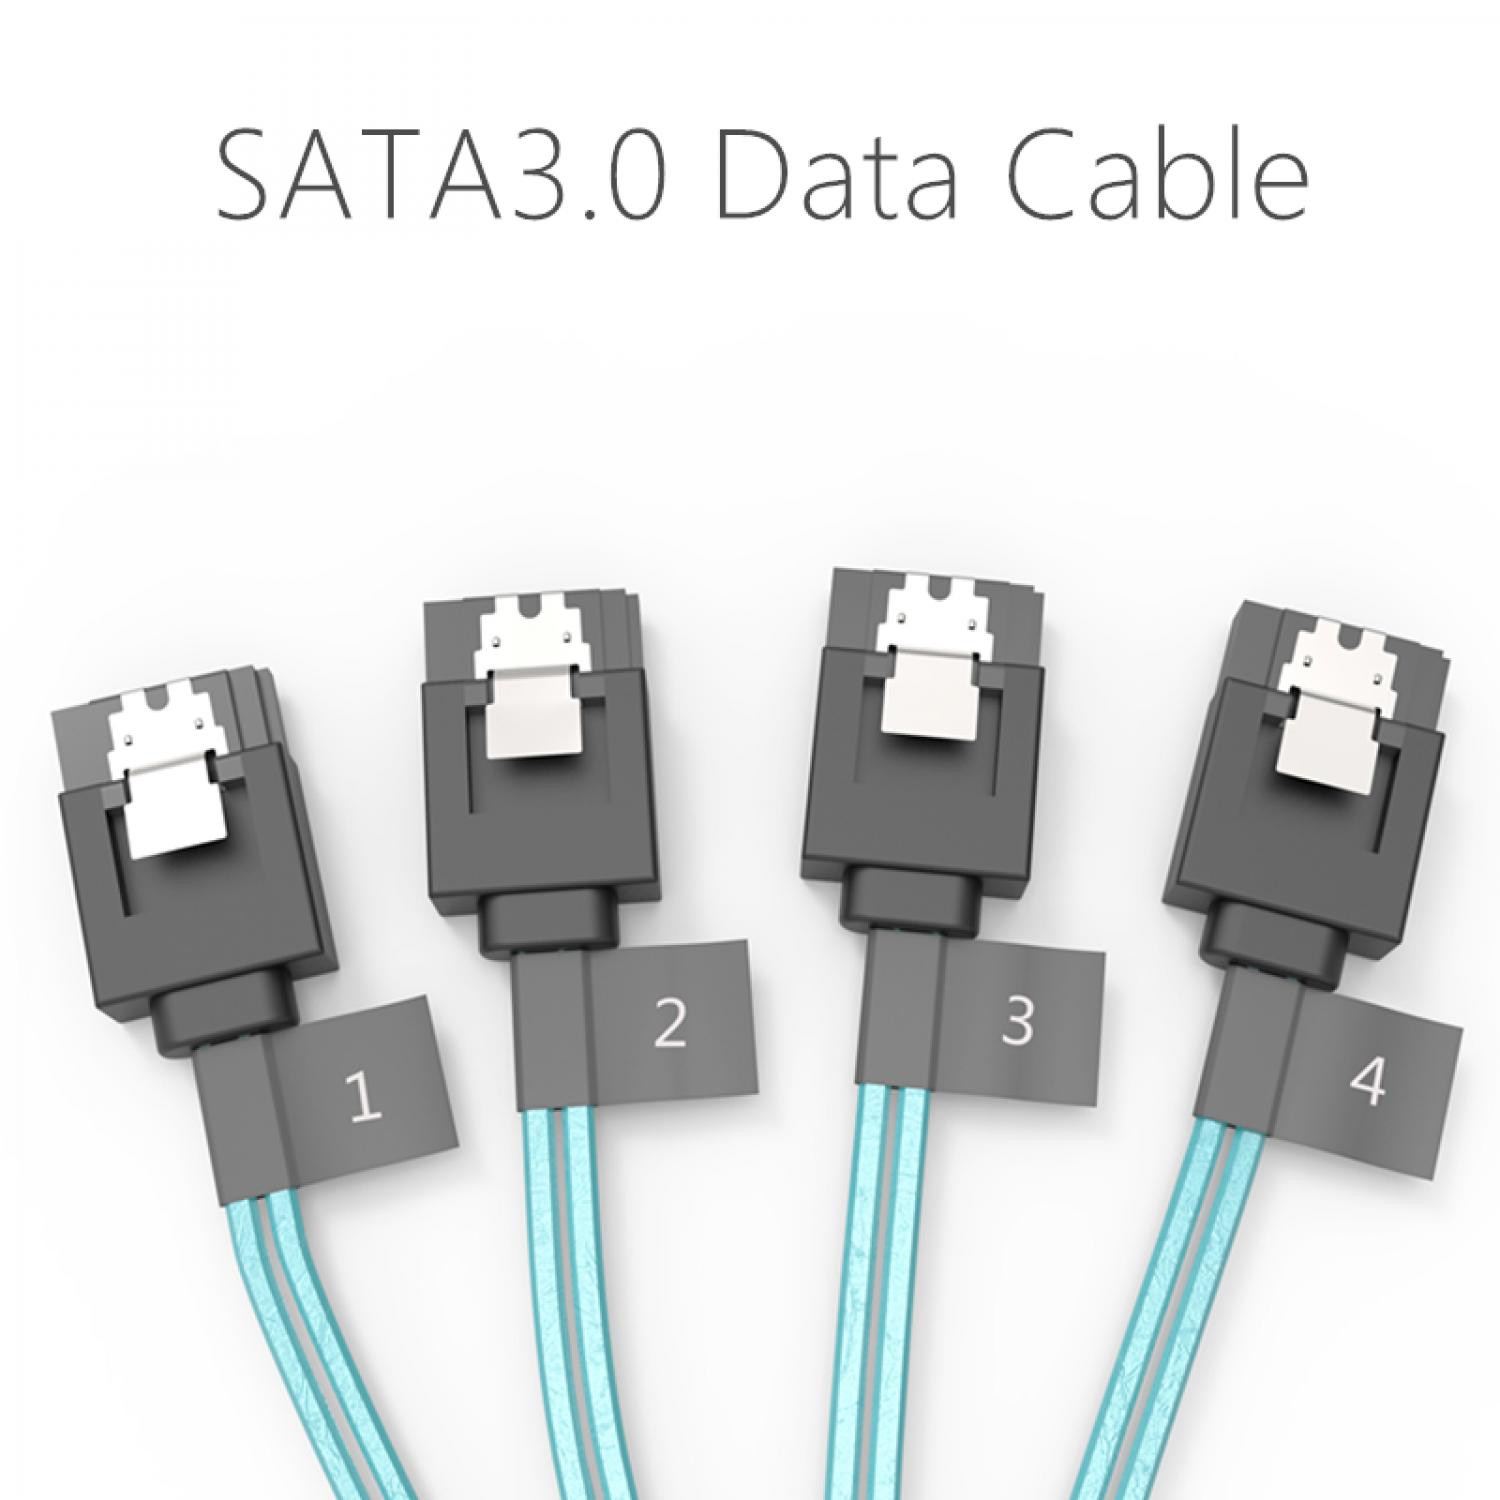 Kabel SATA 3.0 (Max. 4 HDD / SSD) Up To 6 Gbps